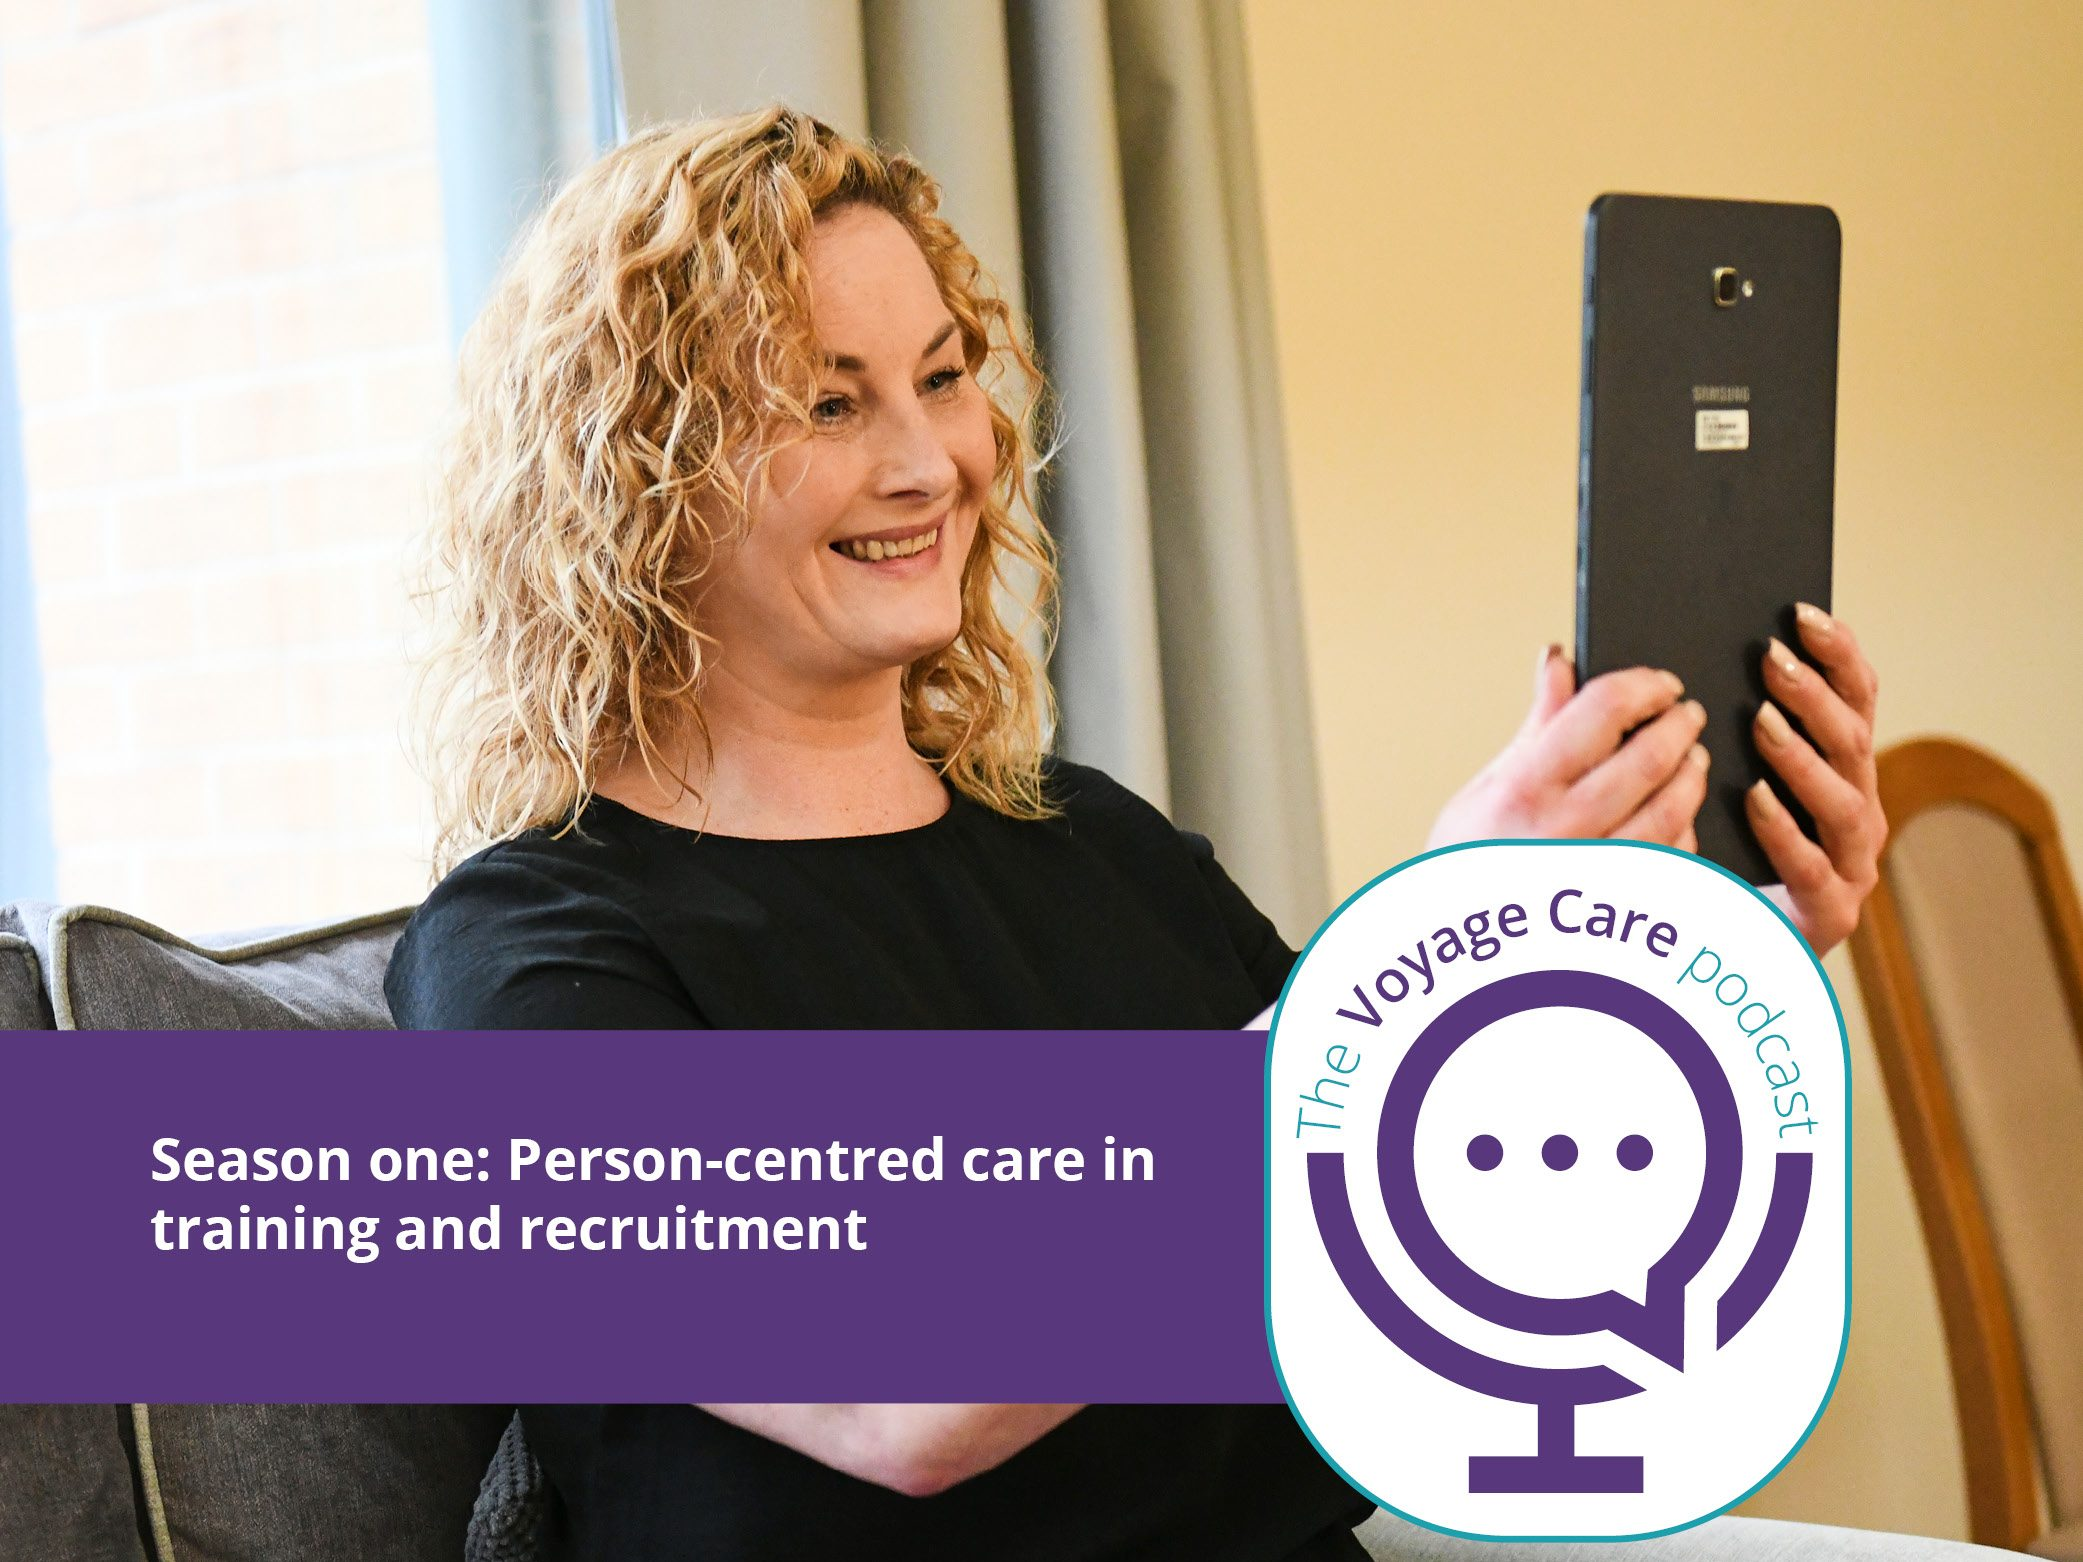 Voyage Care Podcast S1E5: Ian, Anthea, Zoe and Chloe – Person-centred care in training and recruitment